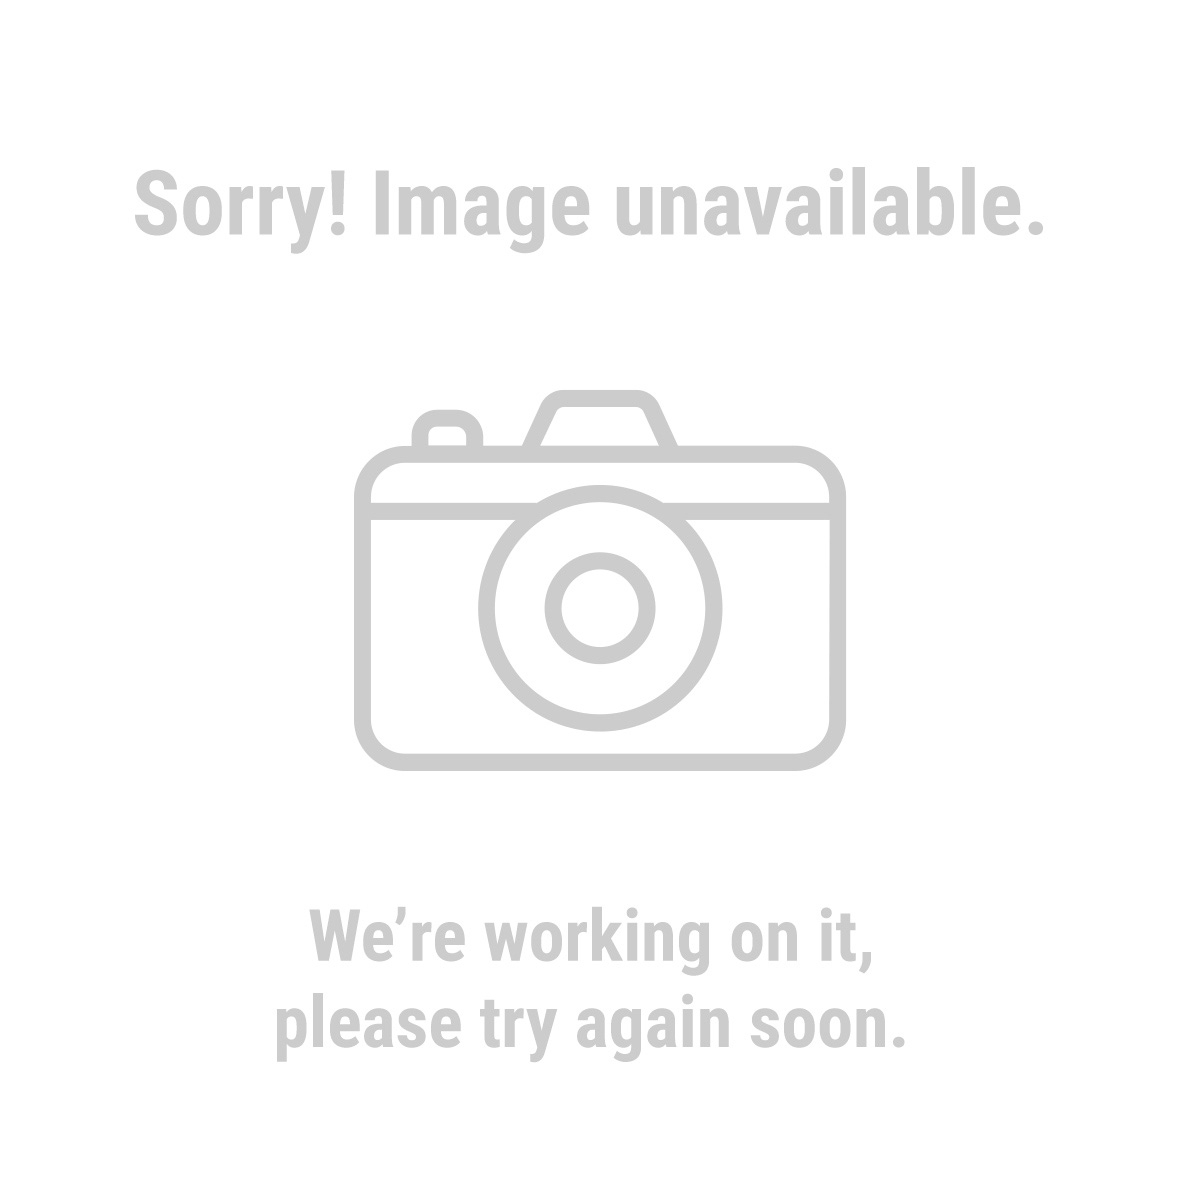 Chicago Electric Welding 66787 240 Volt Inverter Arc/TIG Welder